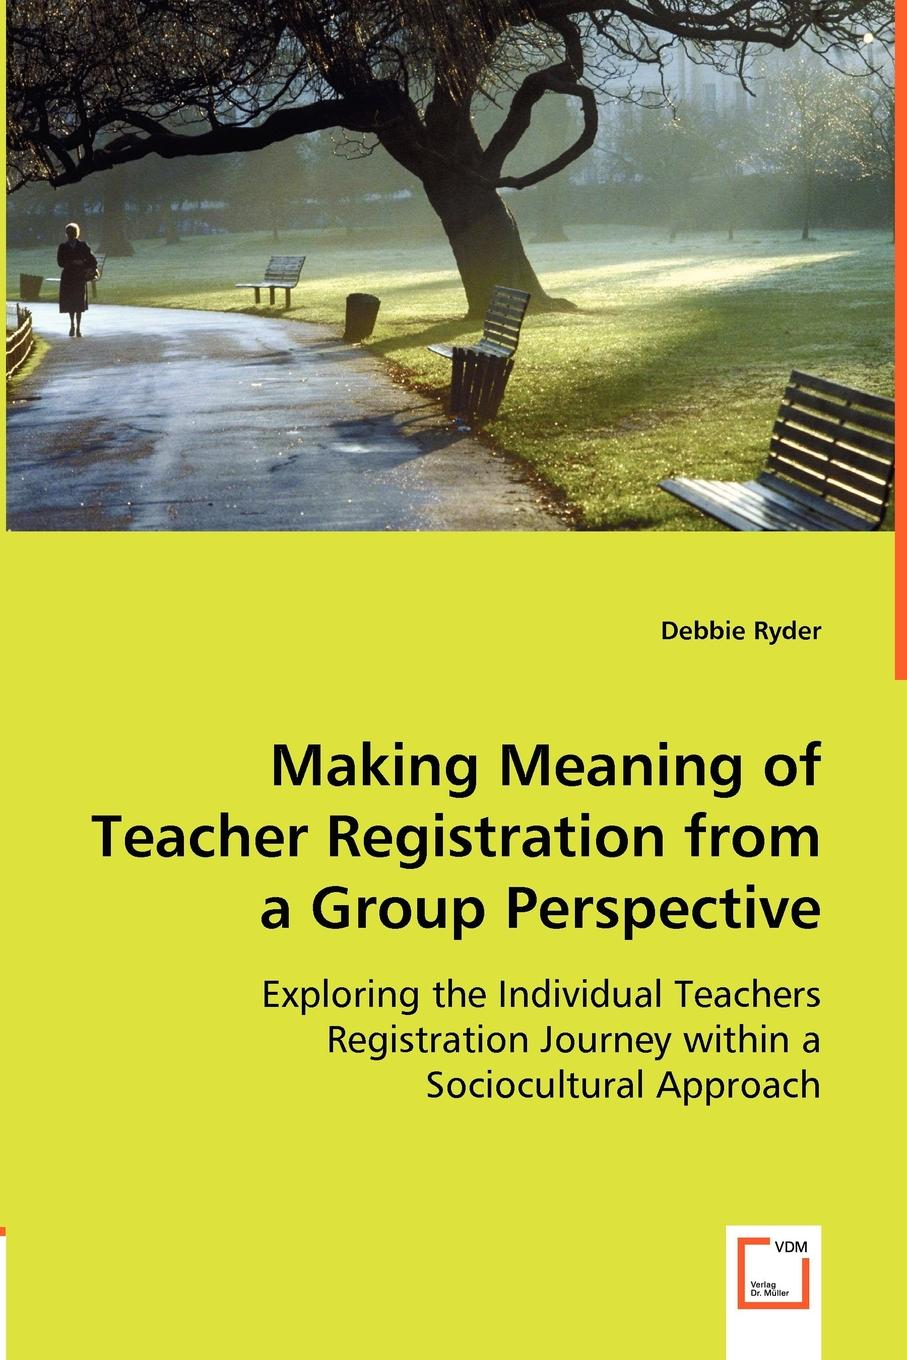 цены Debbie Ryder Making Meaning of Teacher Registration from a Group Perspective